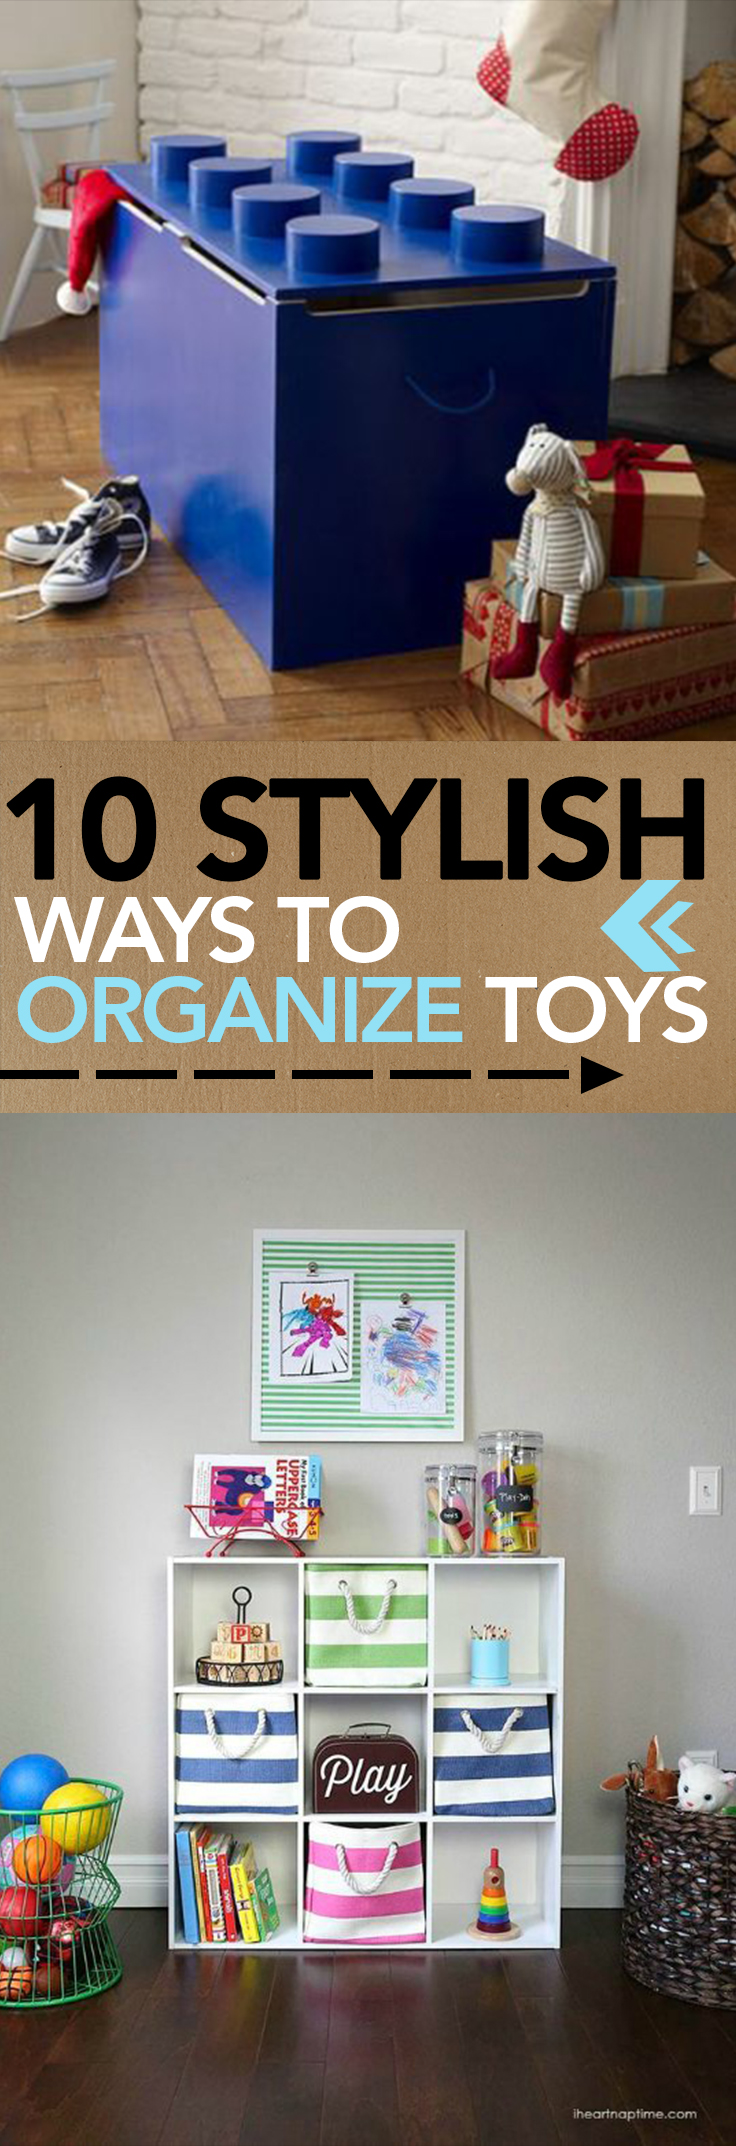 Organize, how to organize toys, stay organized with kids, popular pin, DIY organization, DIY playroom, playroom organization.